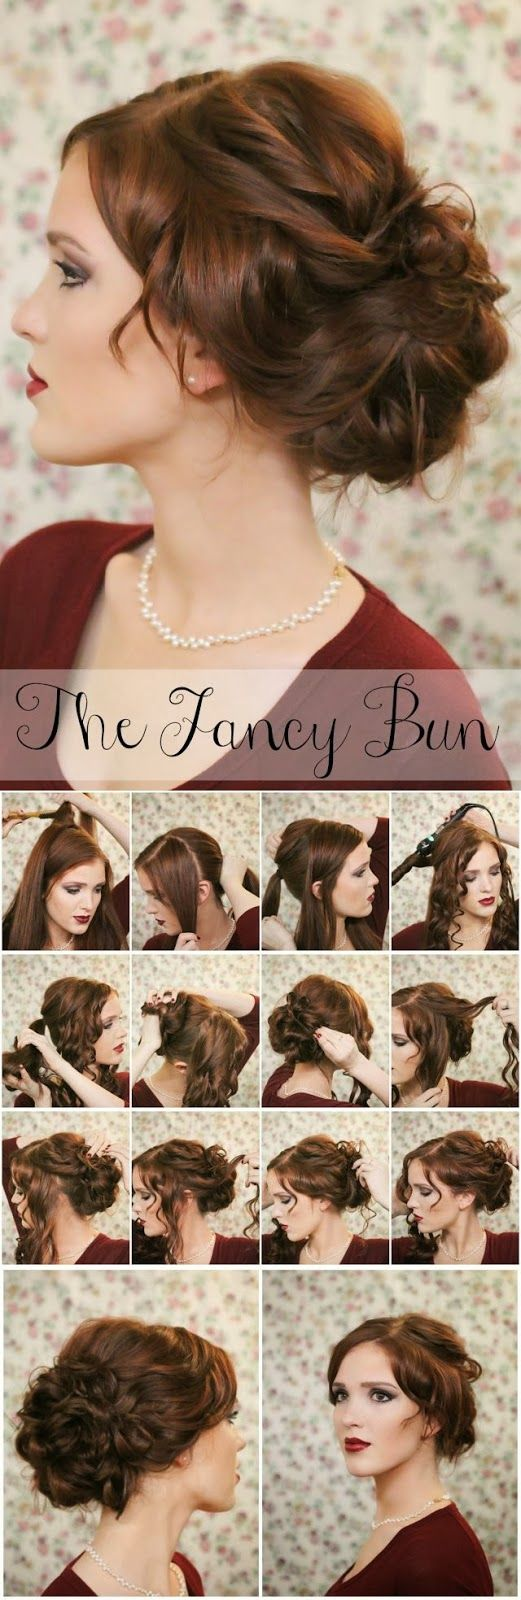 Easy simple knotted bun updo hairstyle tutorials wedding hairstyle